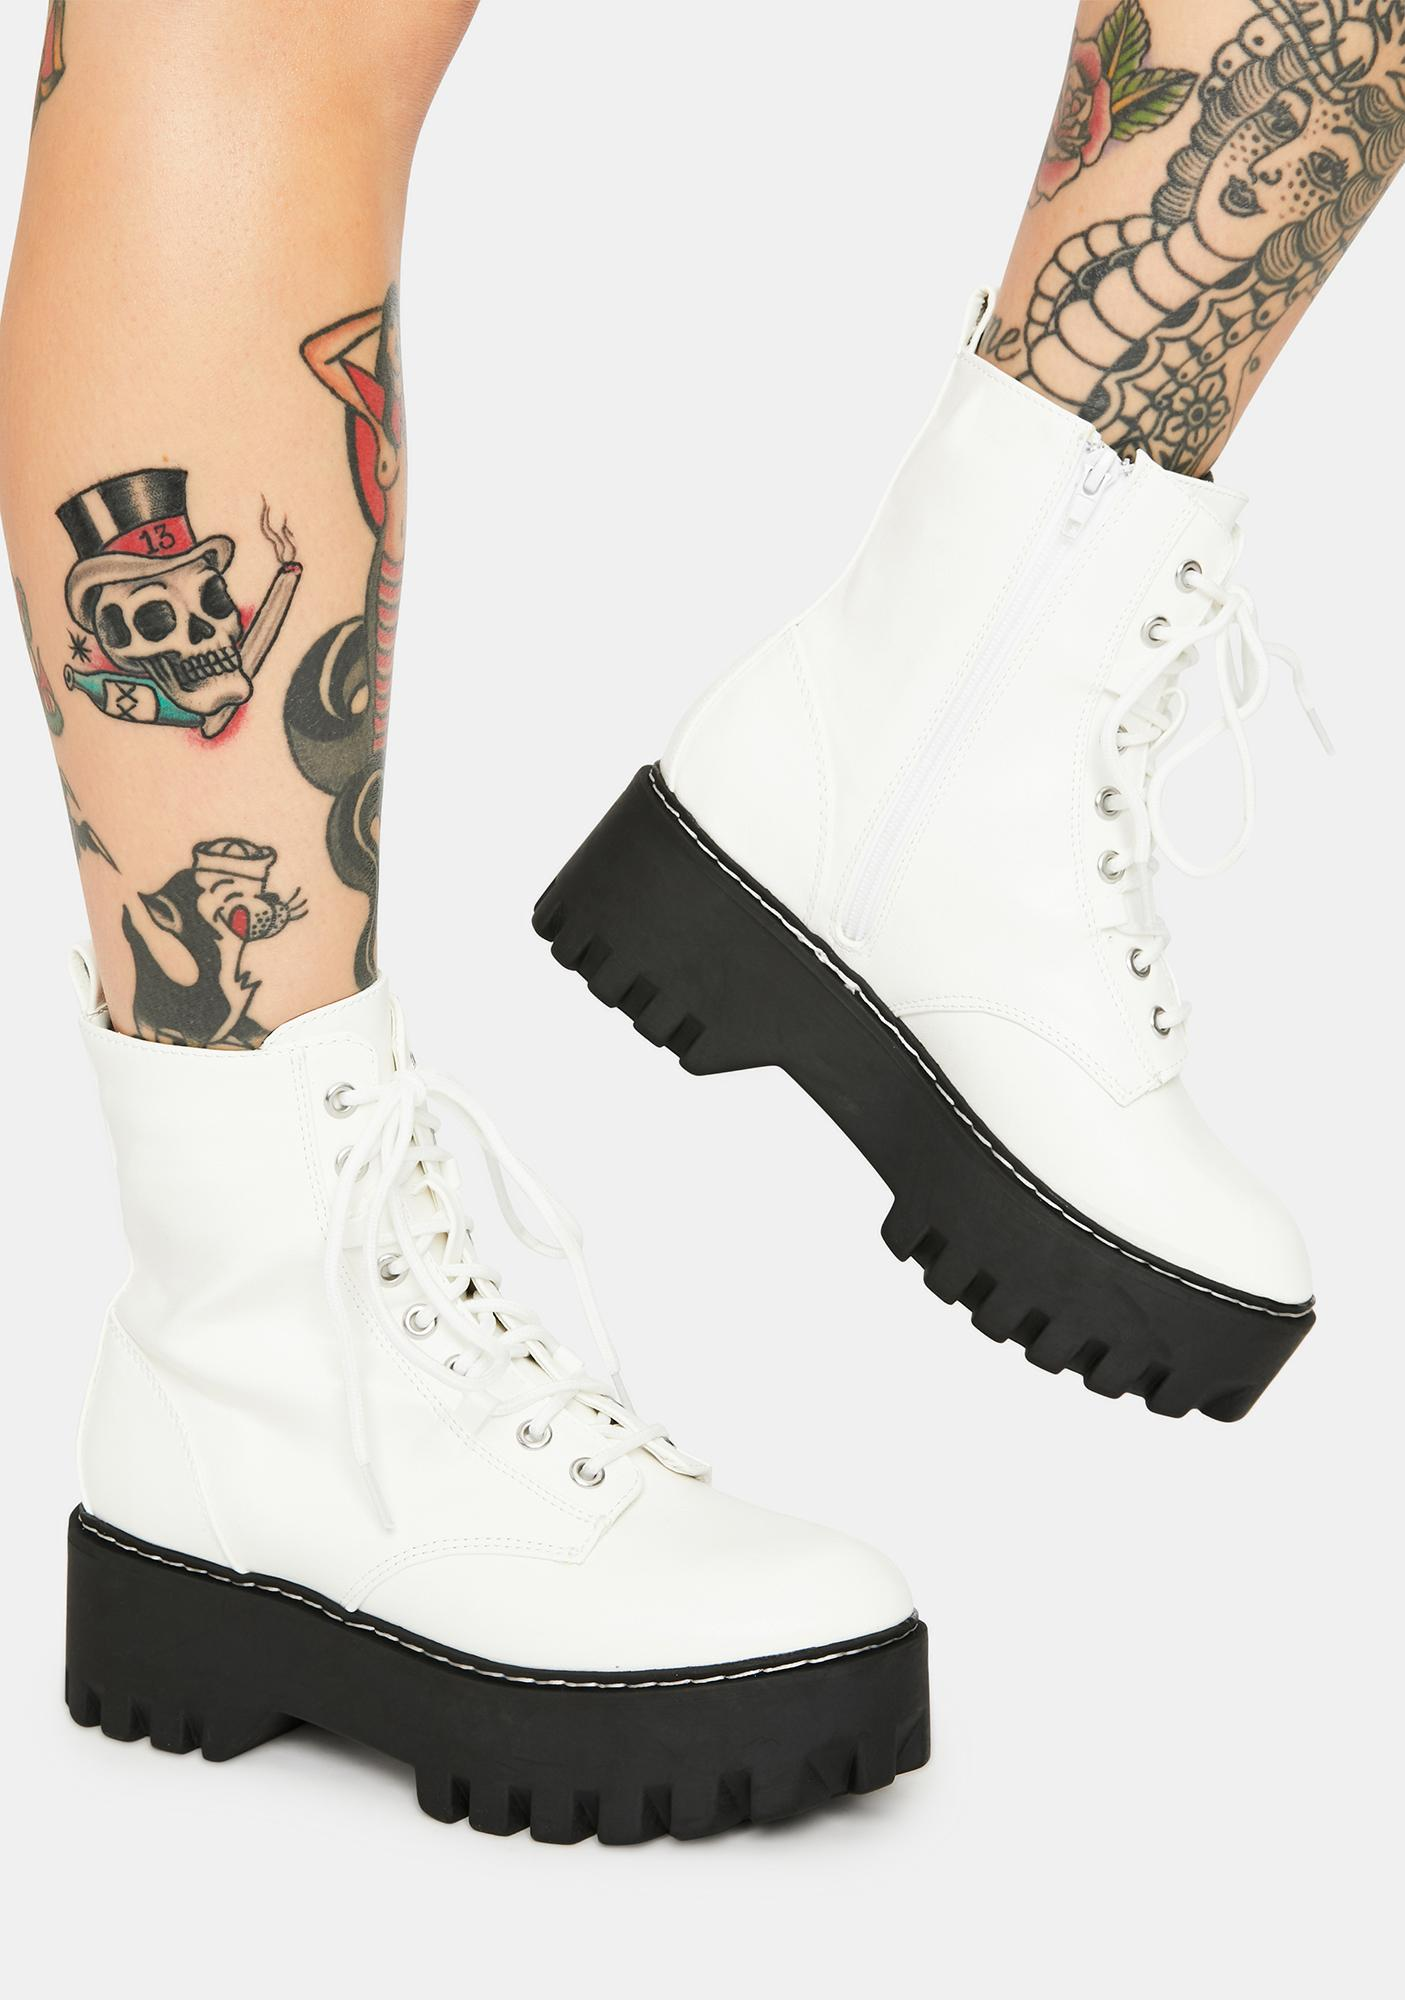 Too Famous Boots